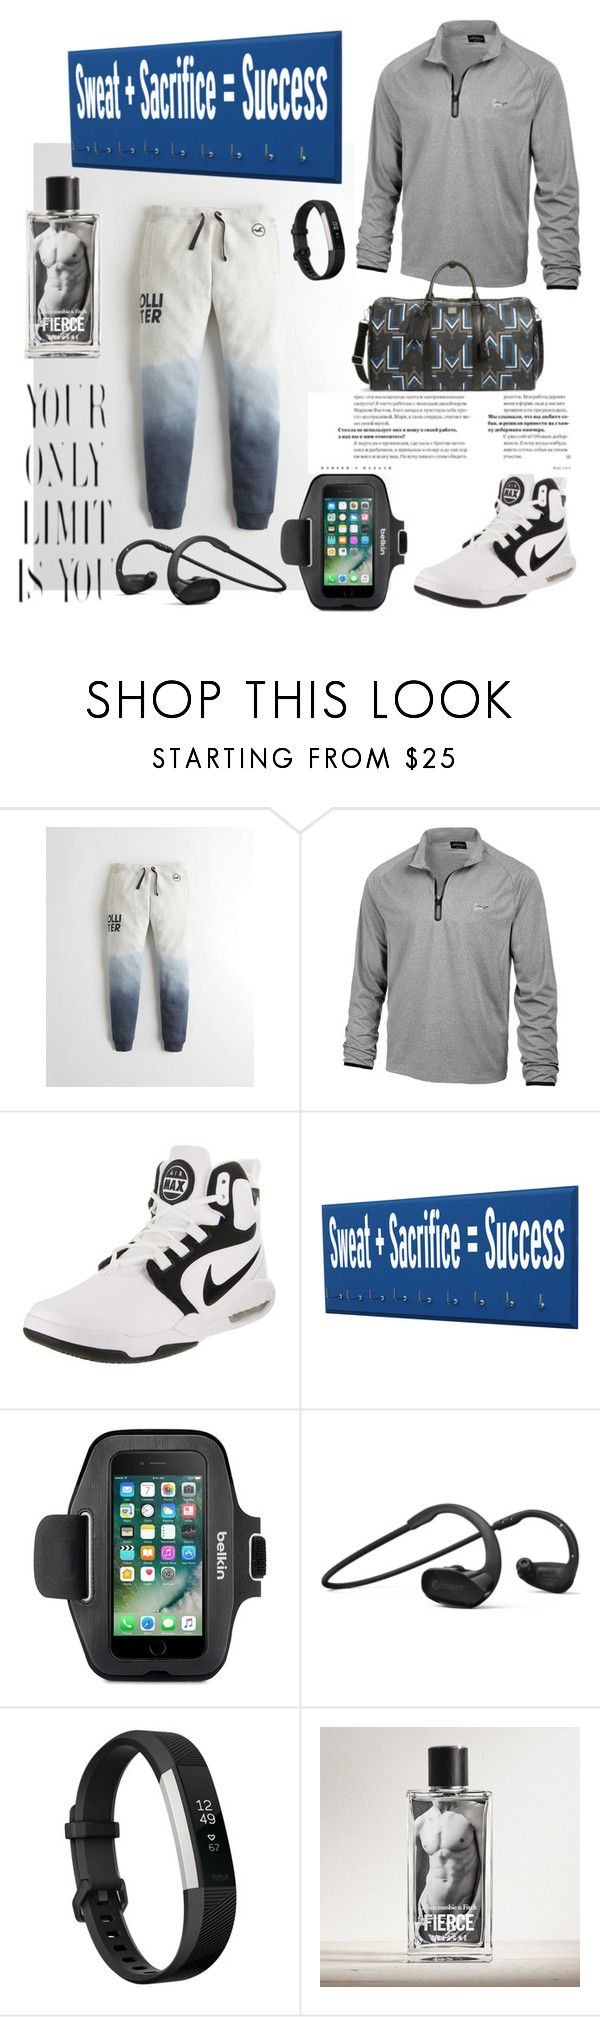 """""""Sweat + Sacrifice = Success"""" by land-of-lillith ❤ liked on Polyvore featuring Hollister Co., Greg Norman, NIKE, Belkin, Fitbit, Abercrombie & Fitch, MCM, men's fashion and menswear"""